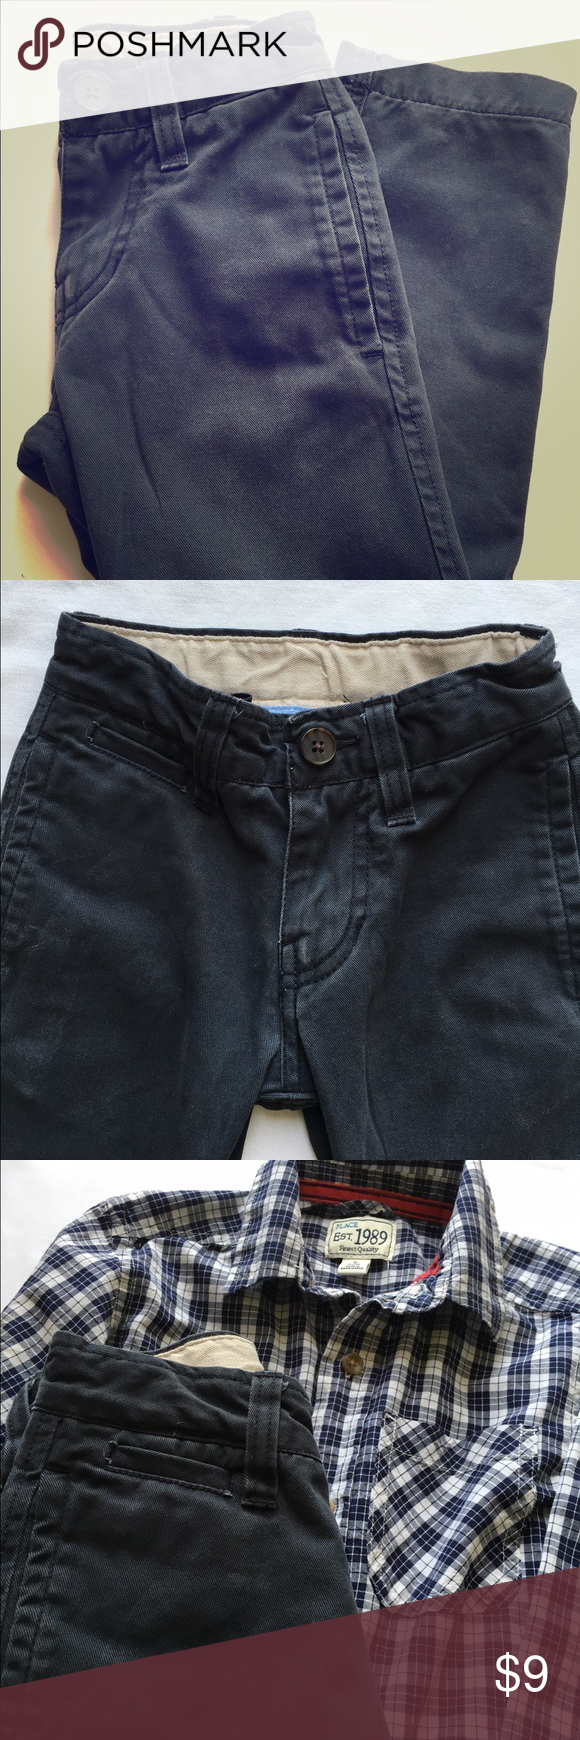 Gap Shield Reinforced Straight Leg Pant Size 5 Slim fit straight leg uniform cotton pants in Navy with a reinforced adjustable waist. Boys size 5. Gap Bottoms Casual